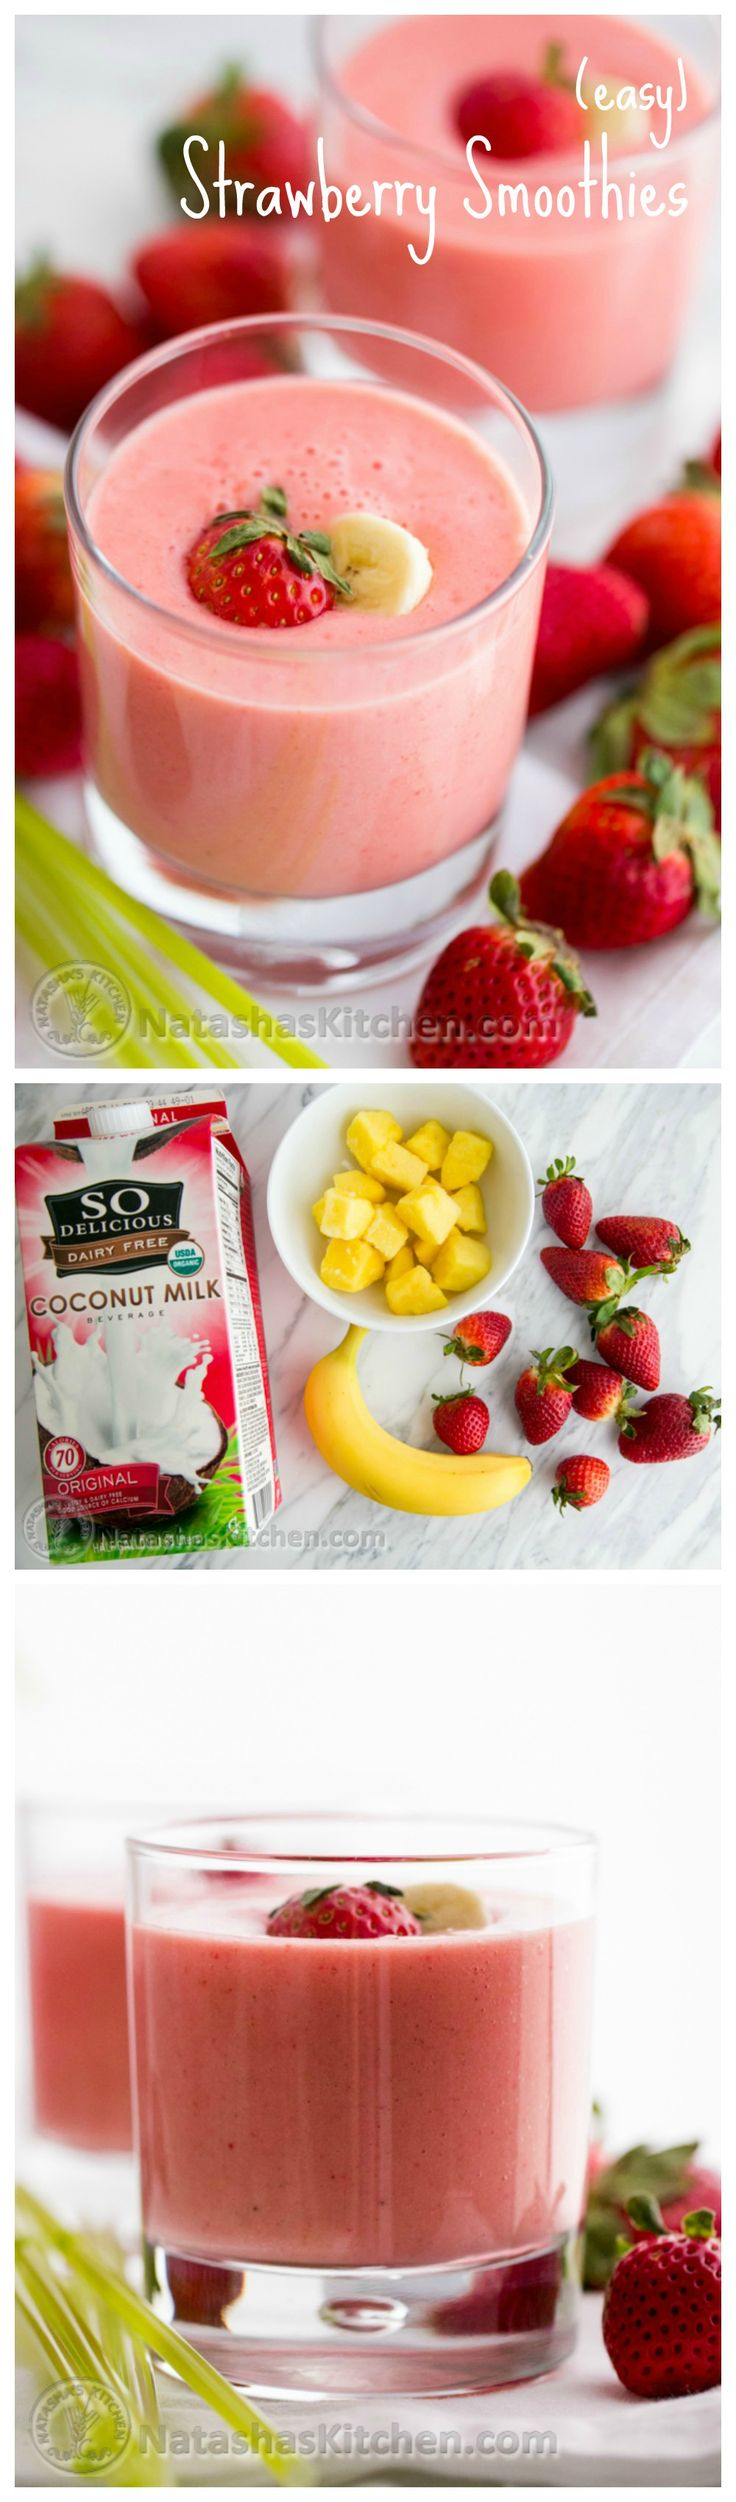 Try this Strawberry Smoothie recipe for some serious feel good energy! @NatashasKitchen